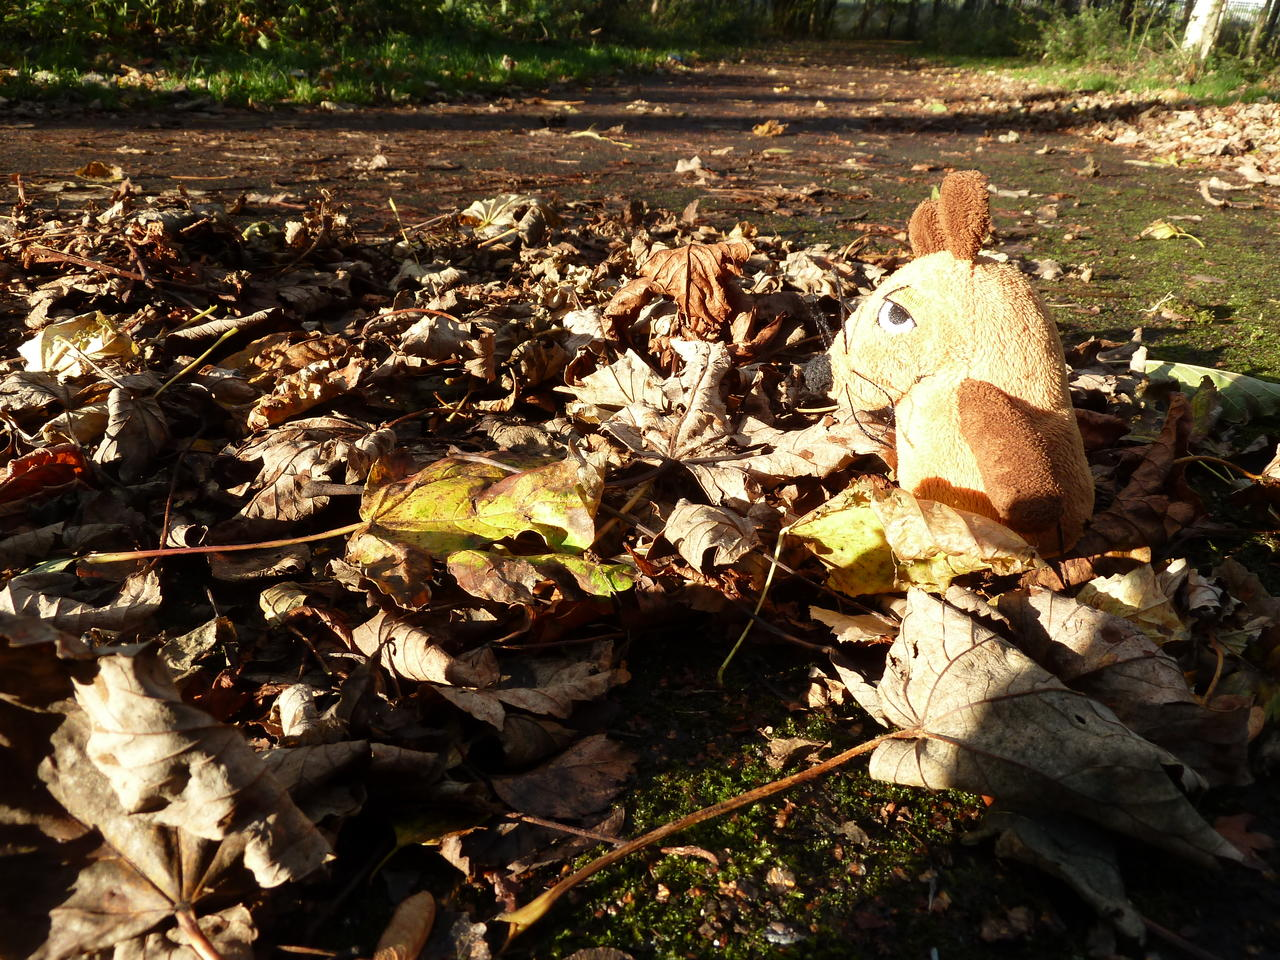 Mouse (a soft toy mouse) looking at leaves on a path